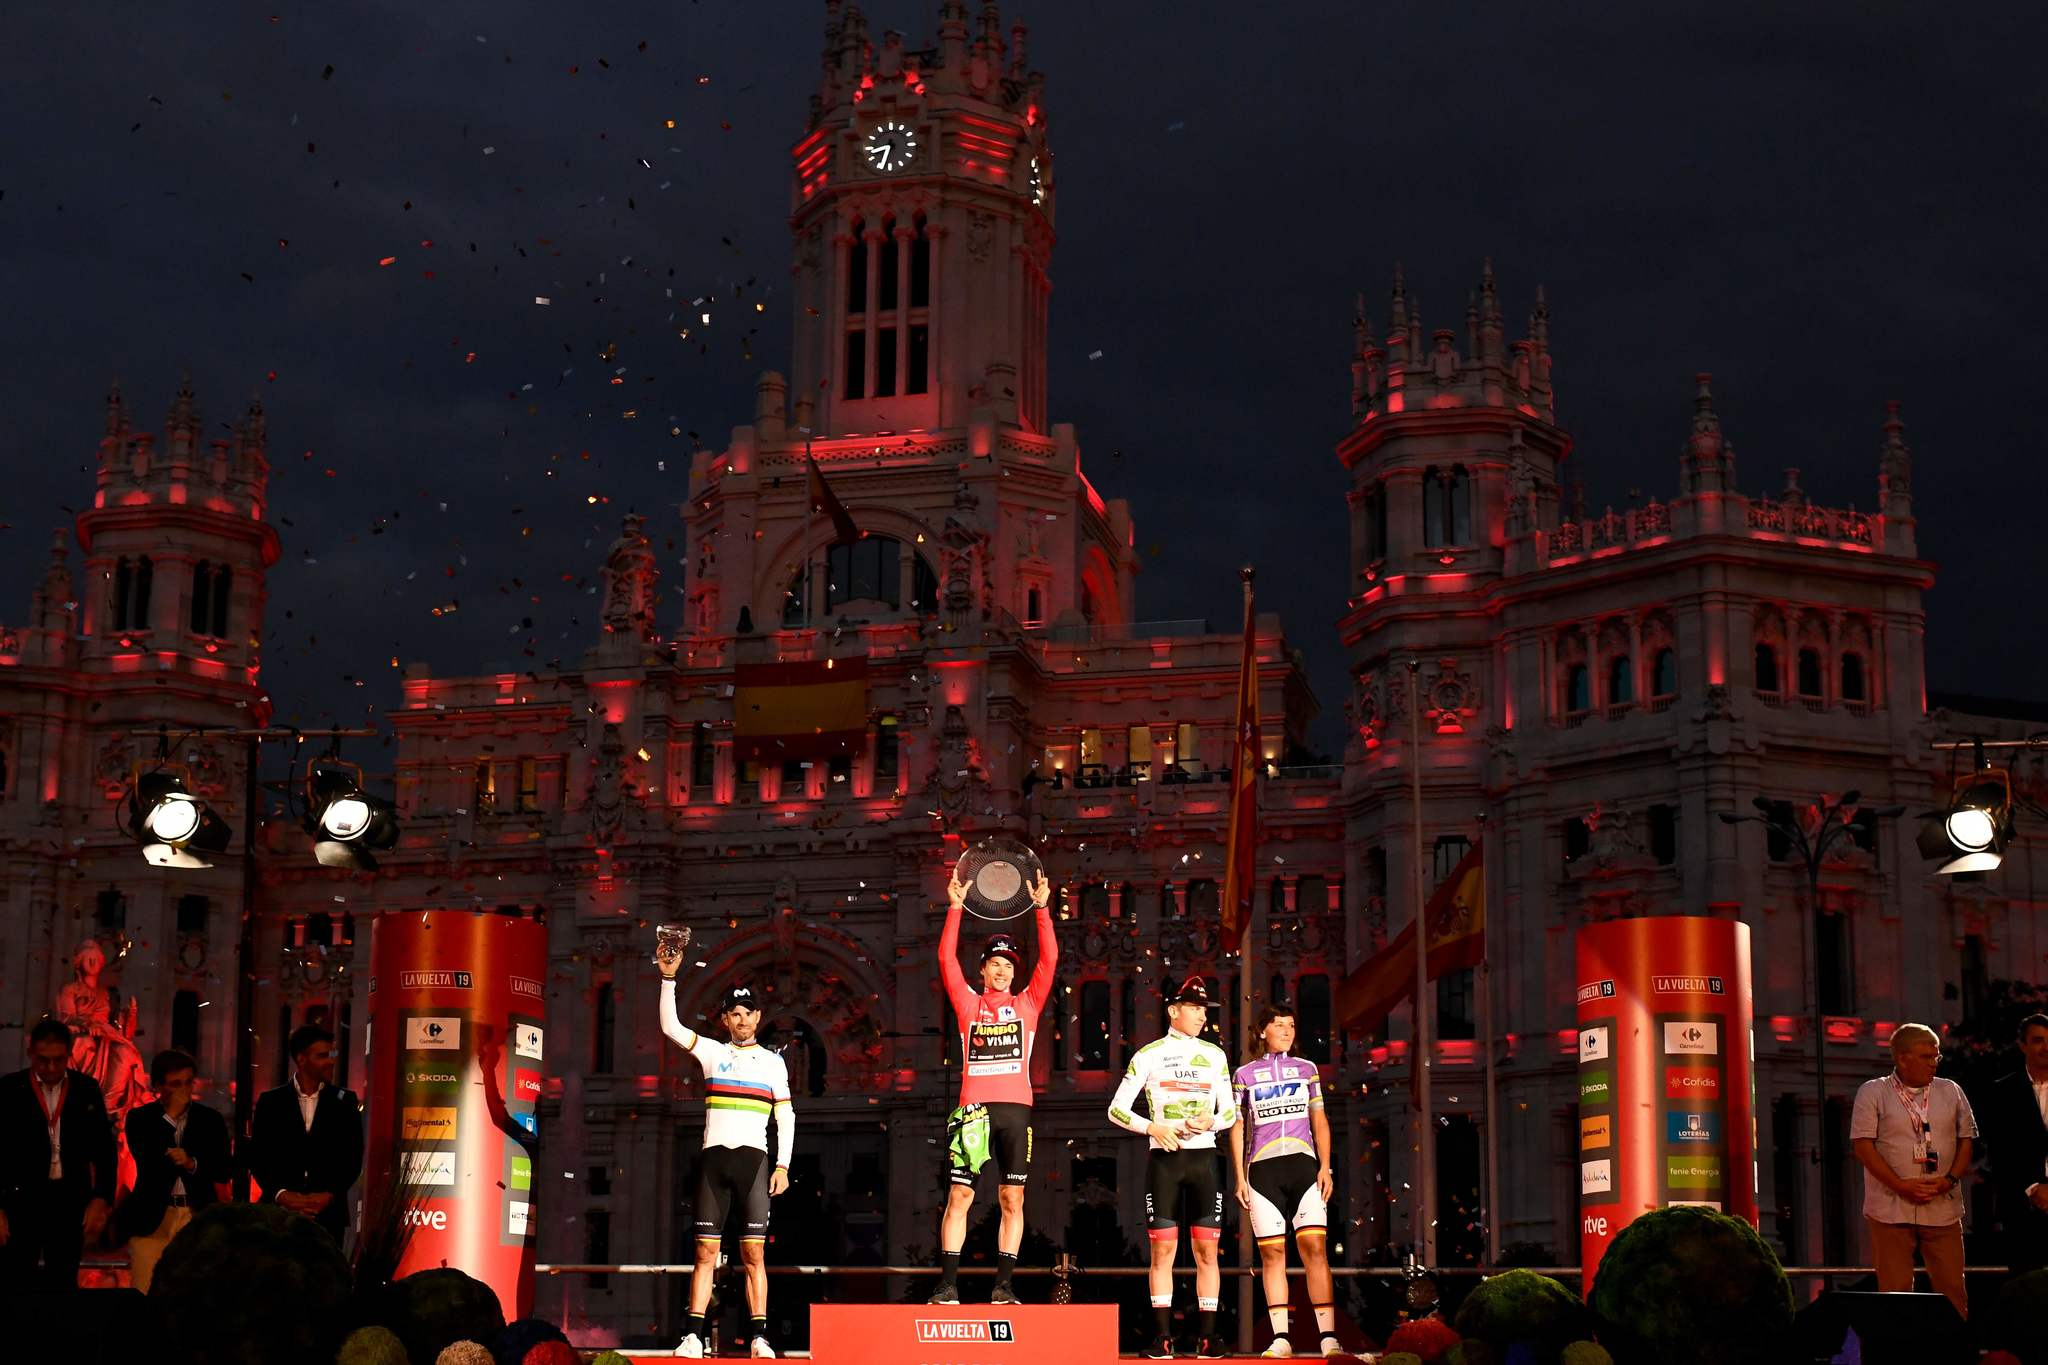 (LtoR) Second-placed Team Movistar rider Spains Alejandro Valverde, winner Team Jumbo rider Slovenias Primoz <HIT>Roglic</HIT> and third-placed Team UAE Emirates rider Slovenias Tadej Pogacar, celebrate on the podium after the 21st and and last stage of the 2019 La Vuelta cycling Tour of Spain, a 106,6 km race from Fuenlabrada to Madrid on September 15, 2019. (Photo by OSCAR DEL POZO / AFP)